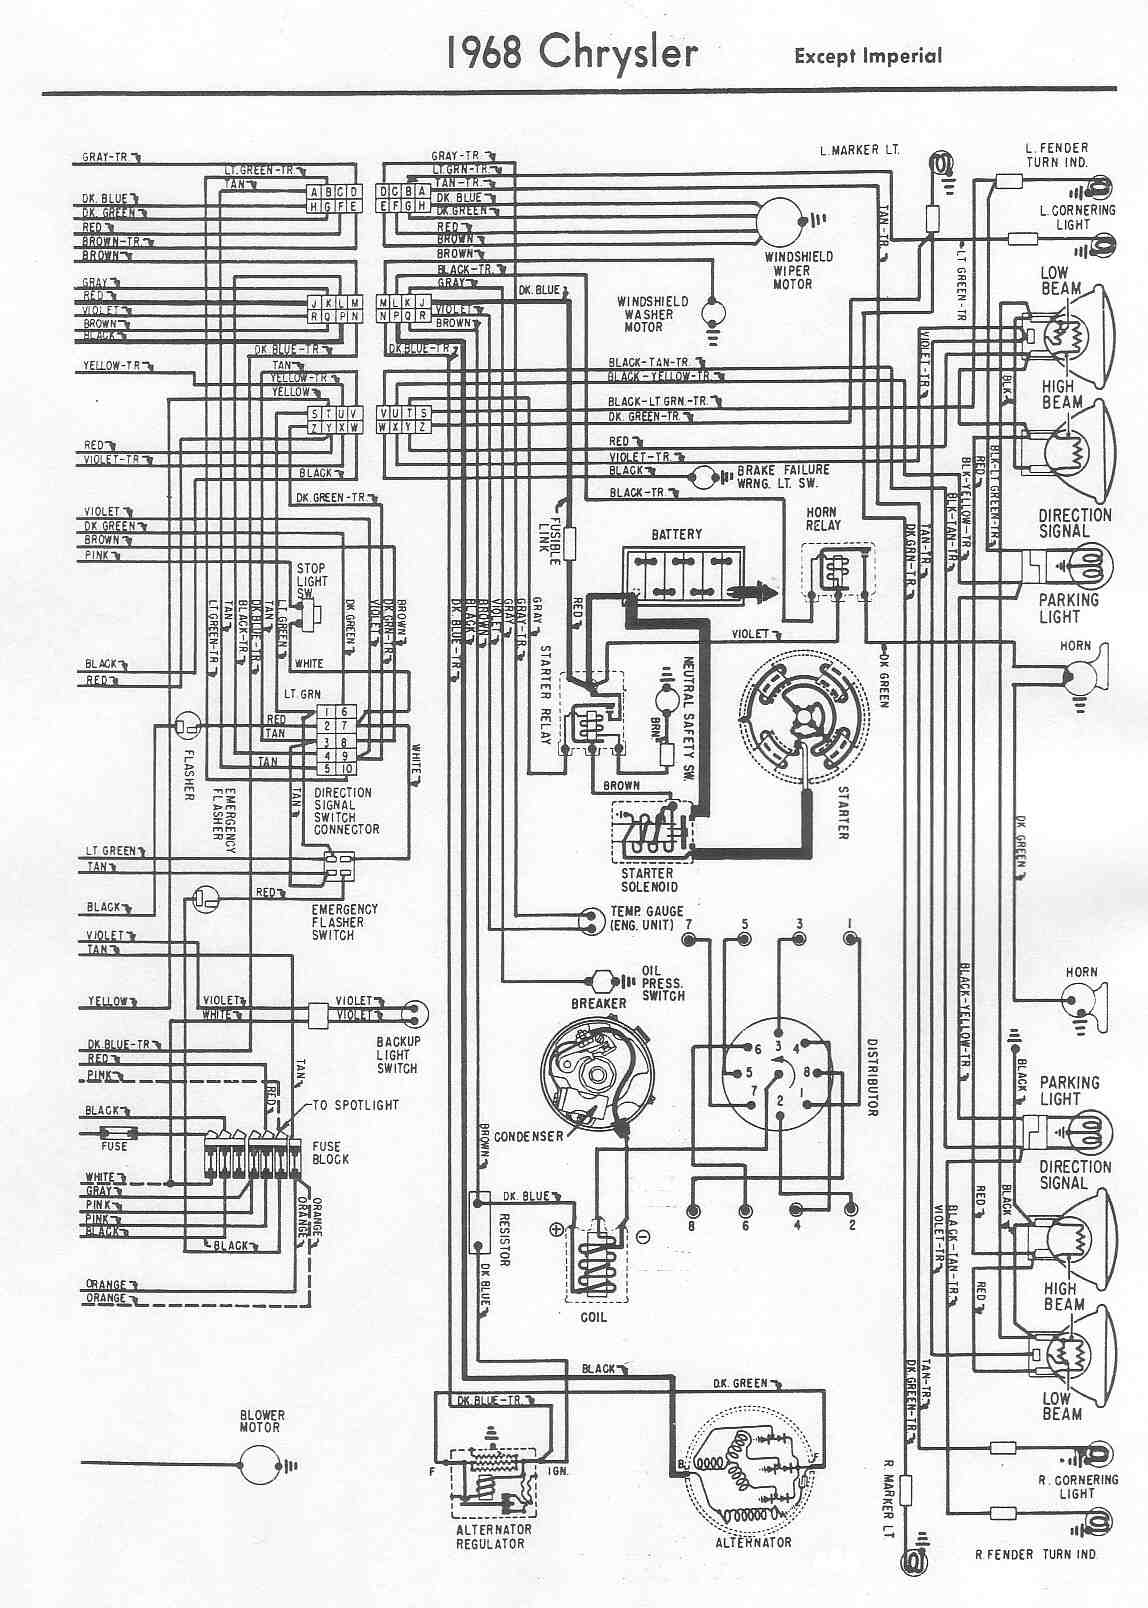 small resolution of wiring diagram in addition 1972 chevy c10 wiring diagram on 68 68 chevelle wiring schematic 1966 gto wiring schematic